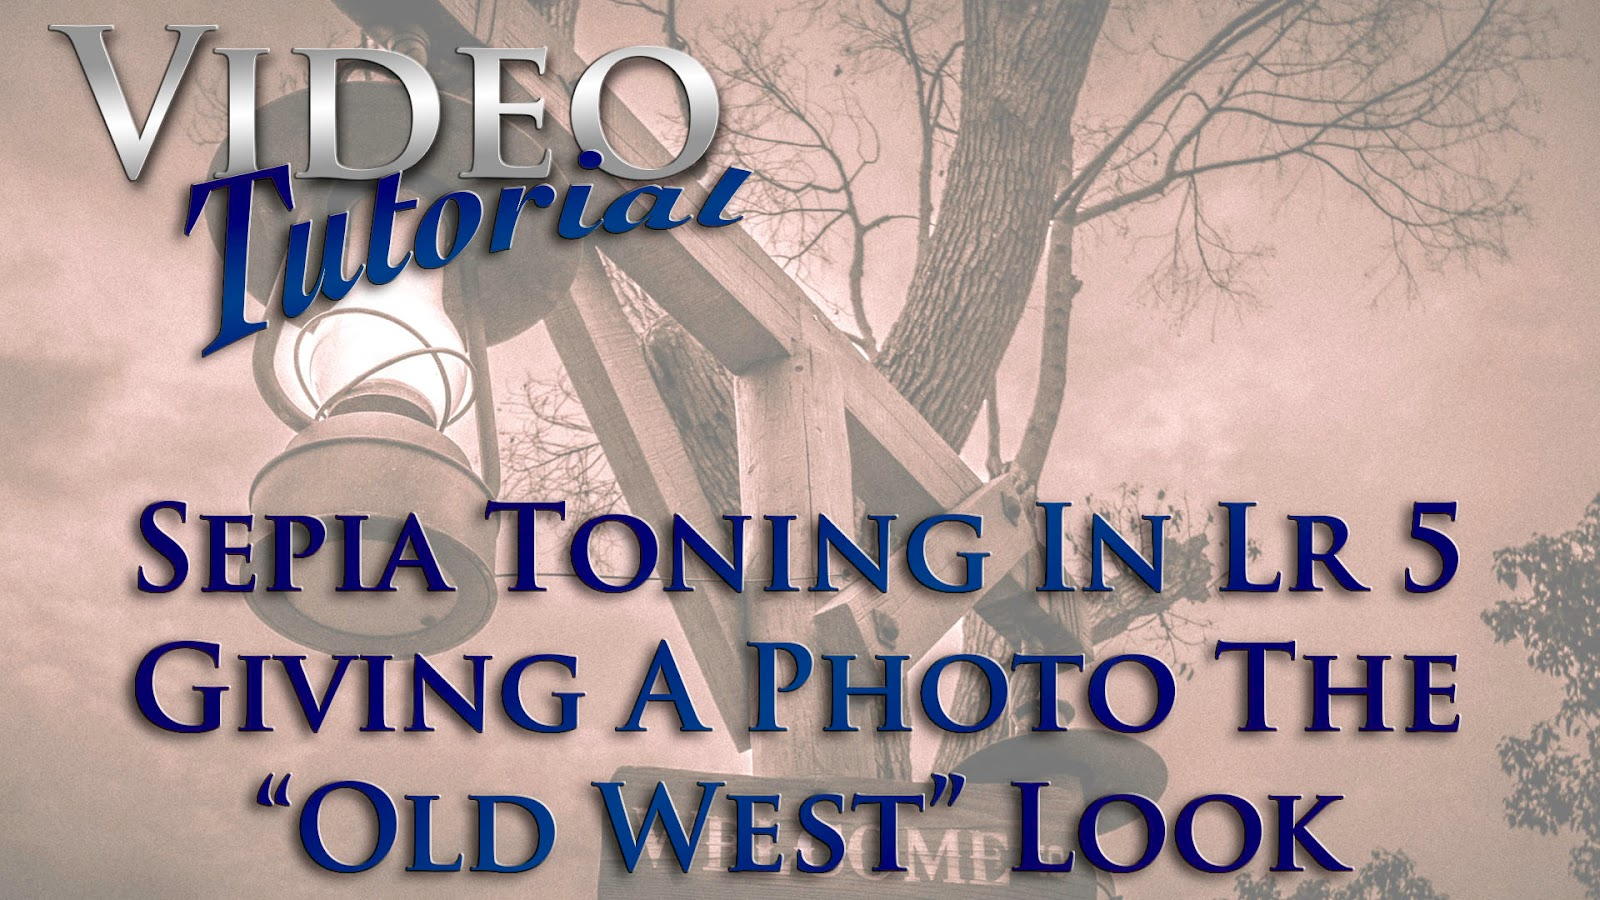 Sepia Toning In Lightroom 5, Giving A Photo The Old West Look | Video Tutorial